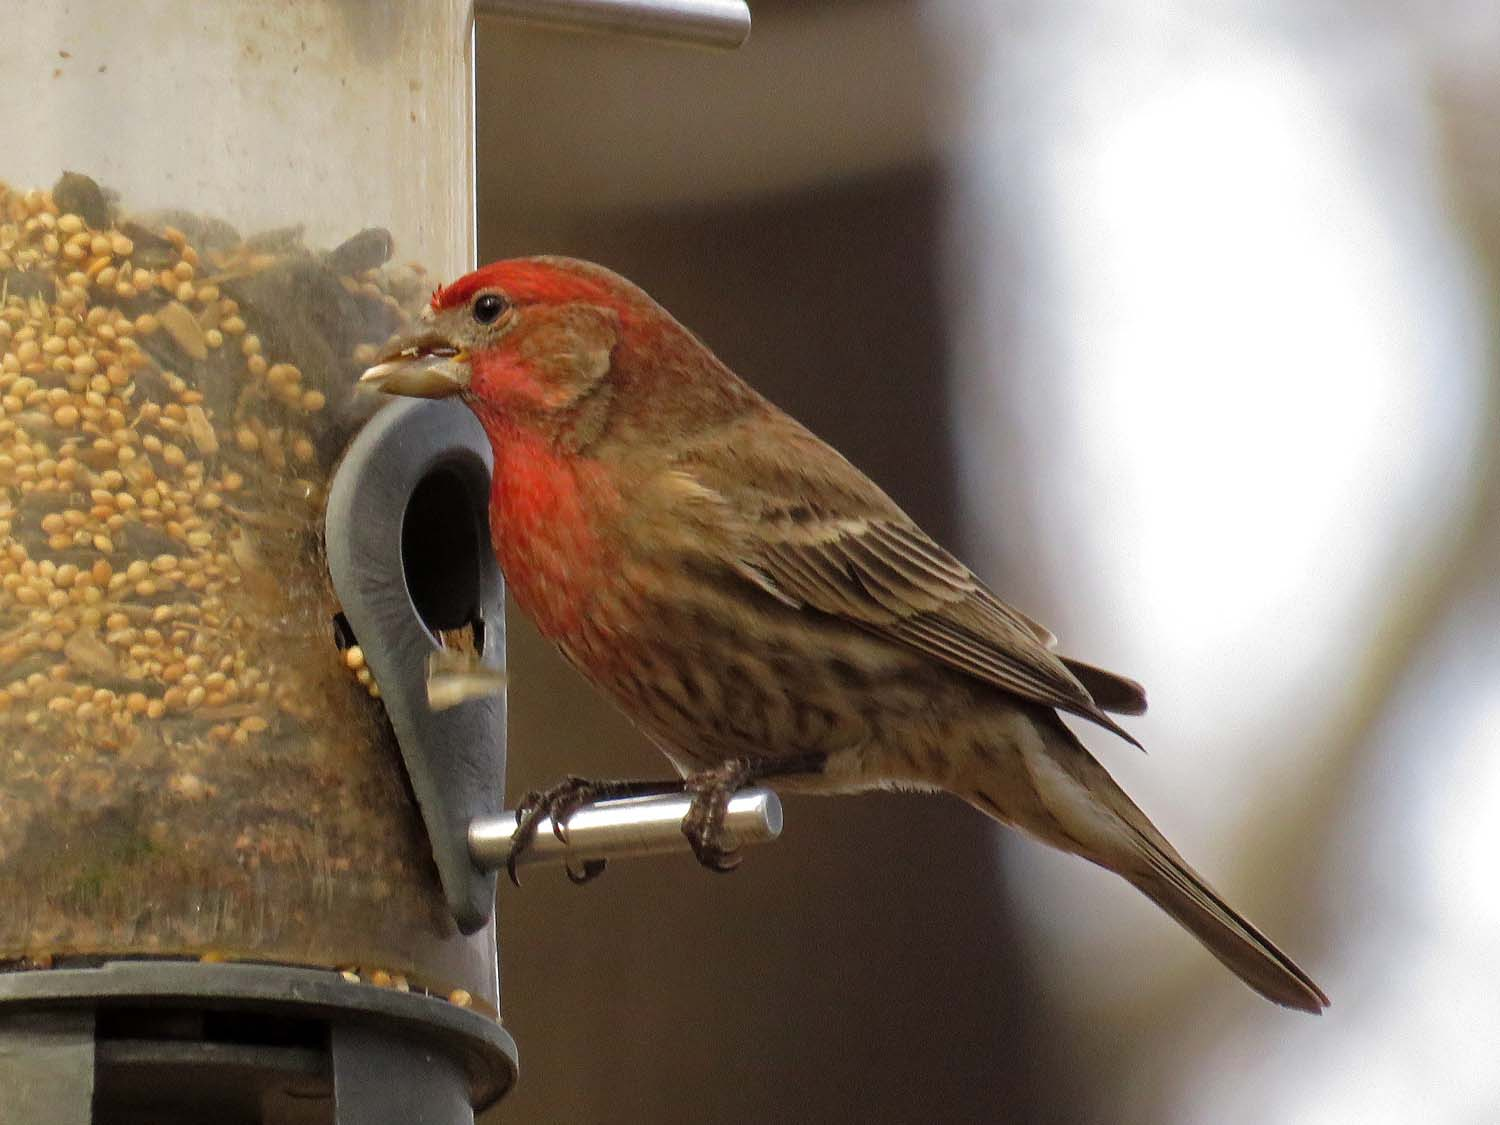 Male house finch, Central Park, March 13, 2018